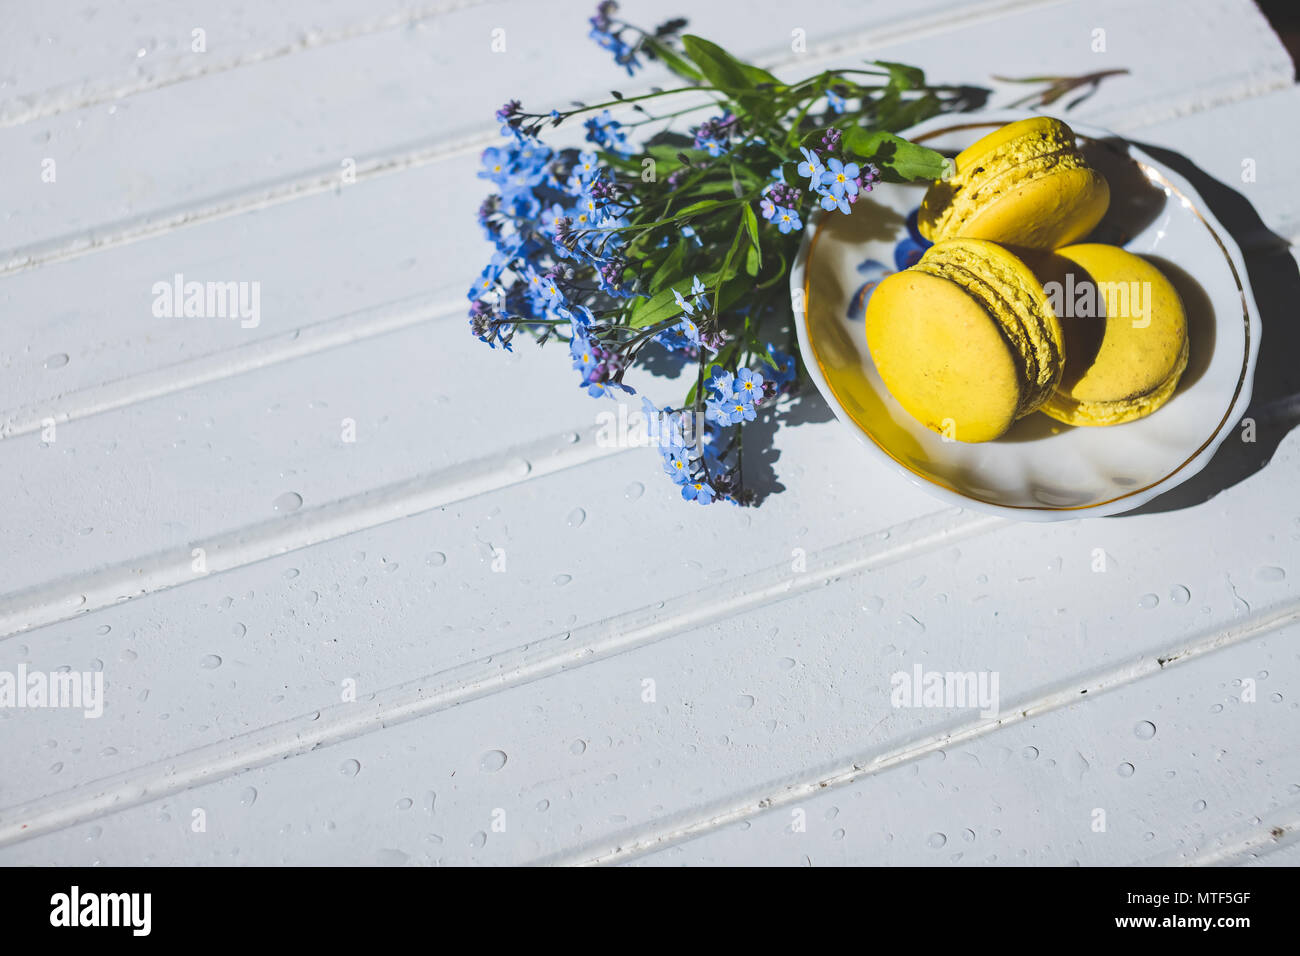 Macaroni tasty French dessert on white wooden table.macarons on vintage background. Macaron is sweet. Toned image. Copy space. tasty yellow French Macarons and forget-me-not flowers - Stock Image